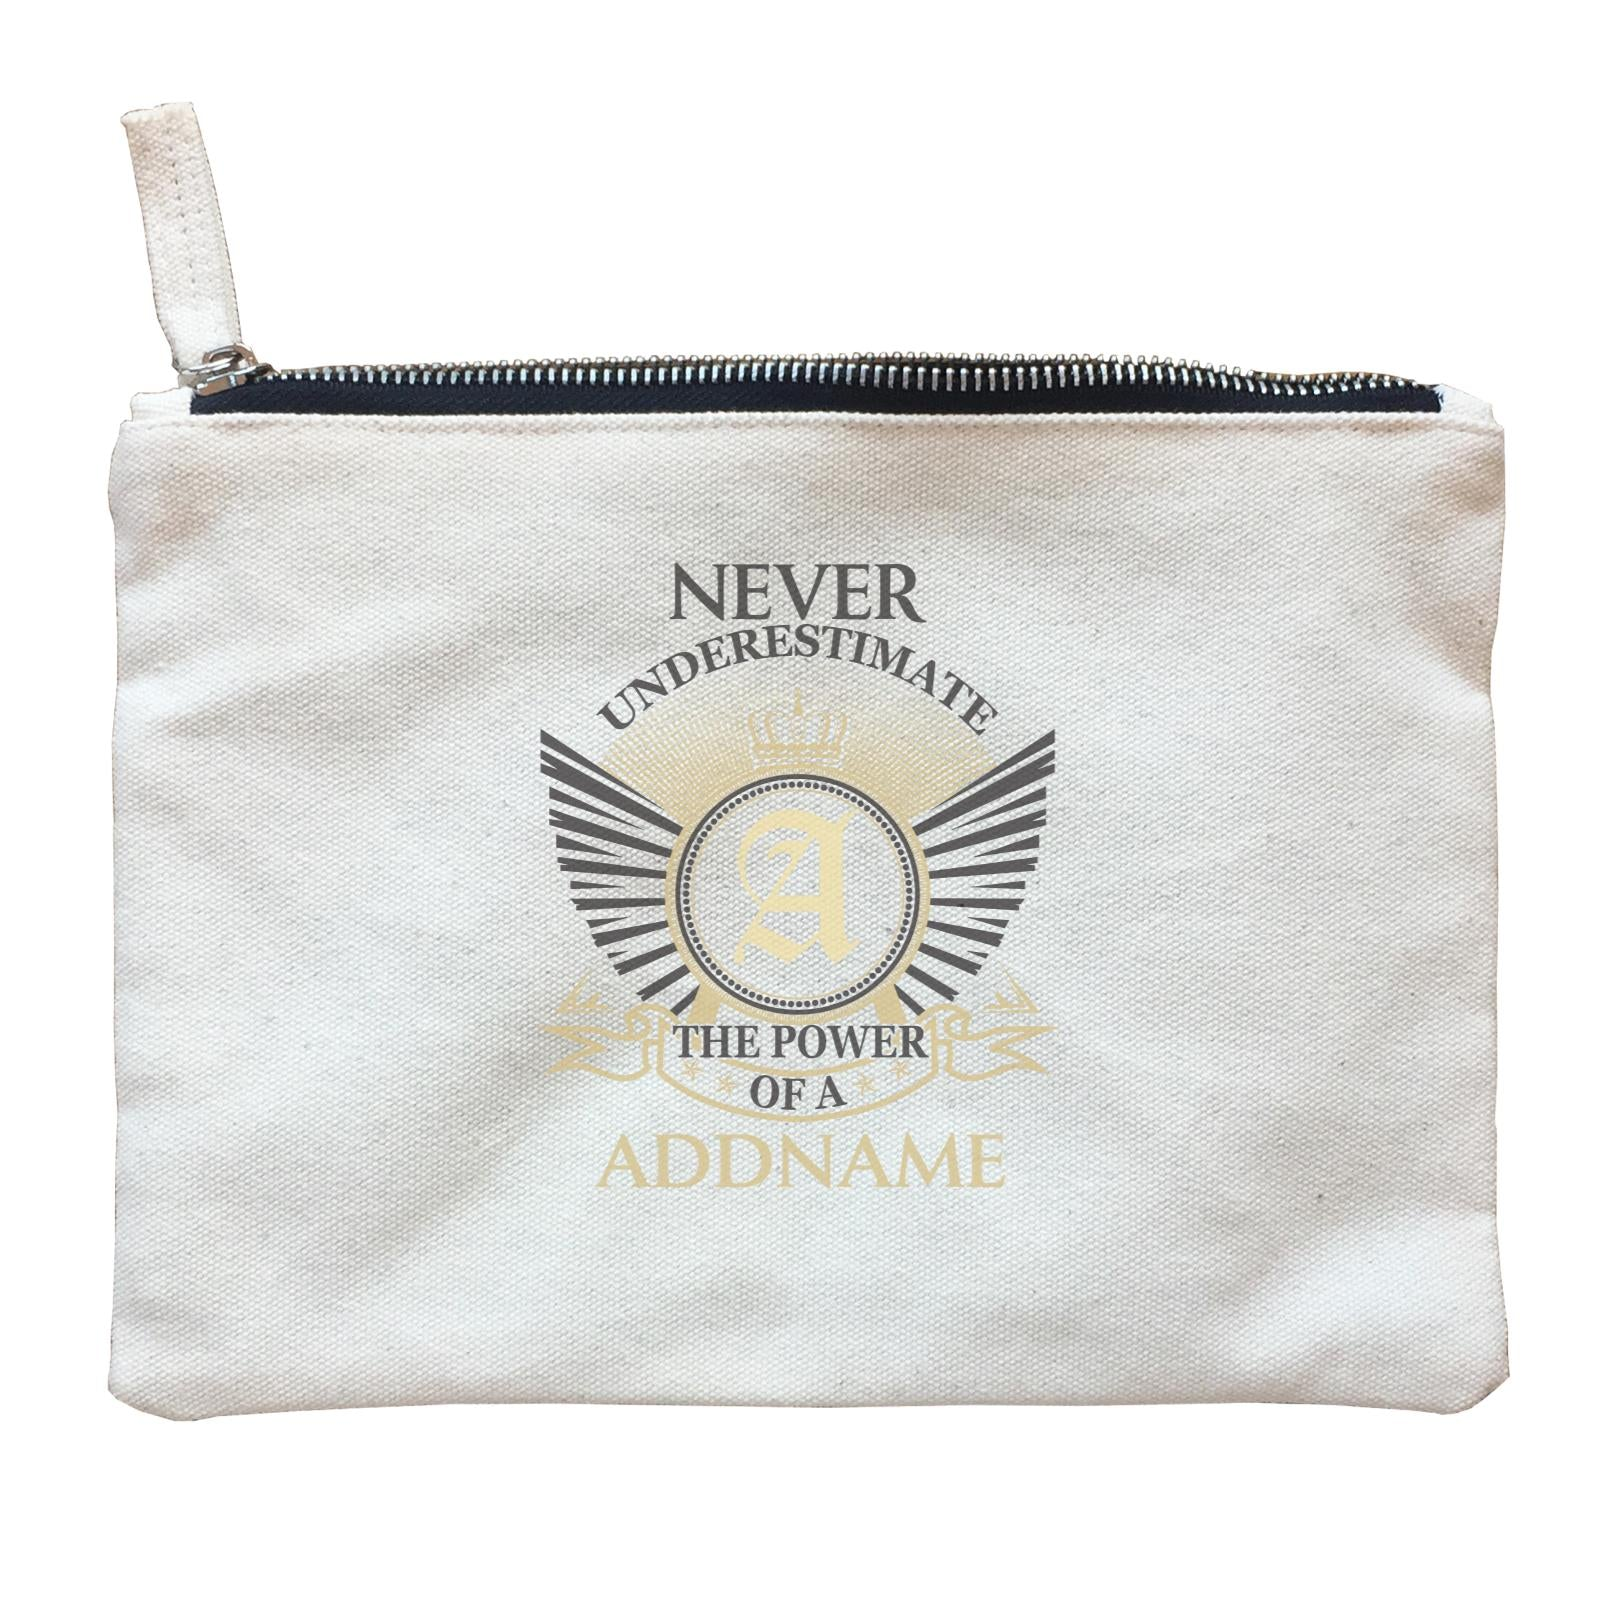 Personalize It Awesome Never Underestimate with  The Power of A with Add Initial and Addname Zipper Pouch